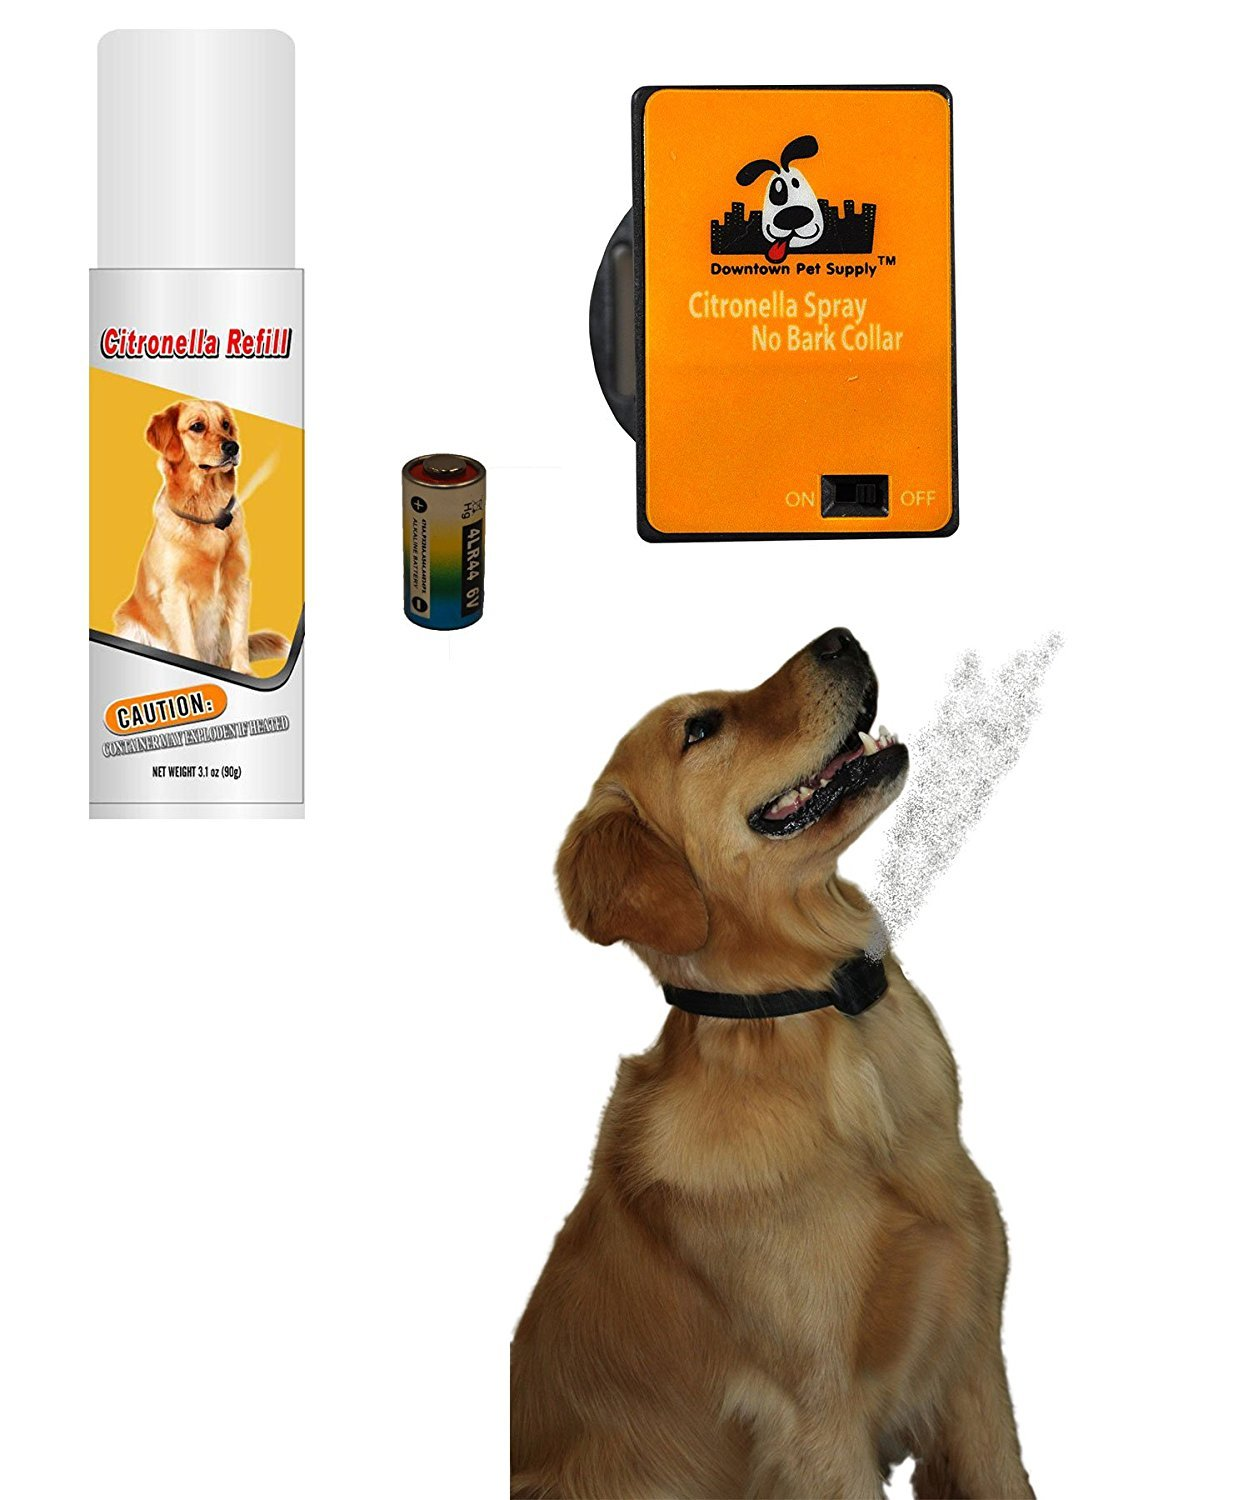 NO BARK Collar Citronella Spray Anti-Bark collar for Dogs Kit Safe, Effective, and Humane Dog Barking Control collar by Downtown Pet Supply